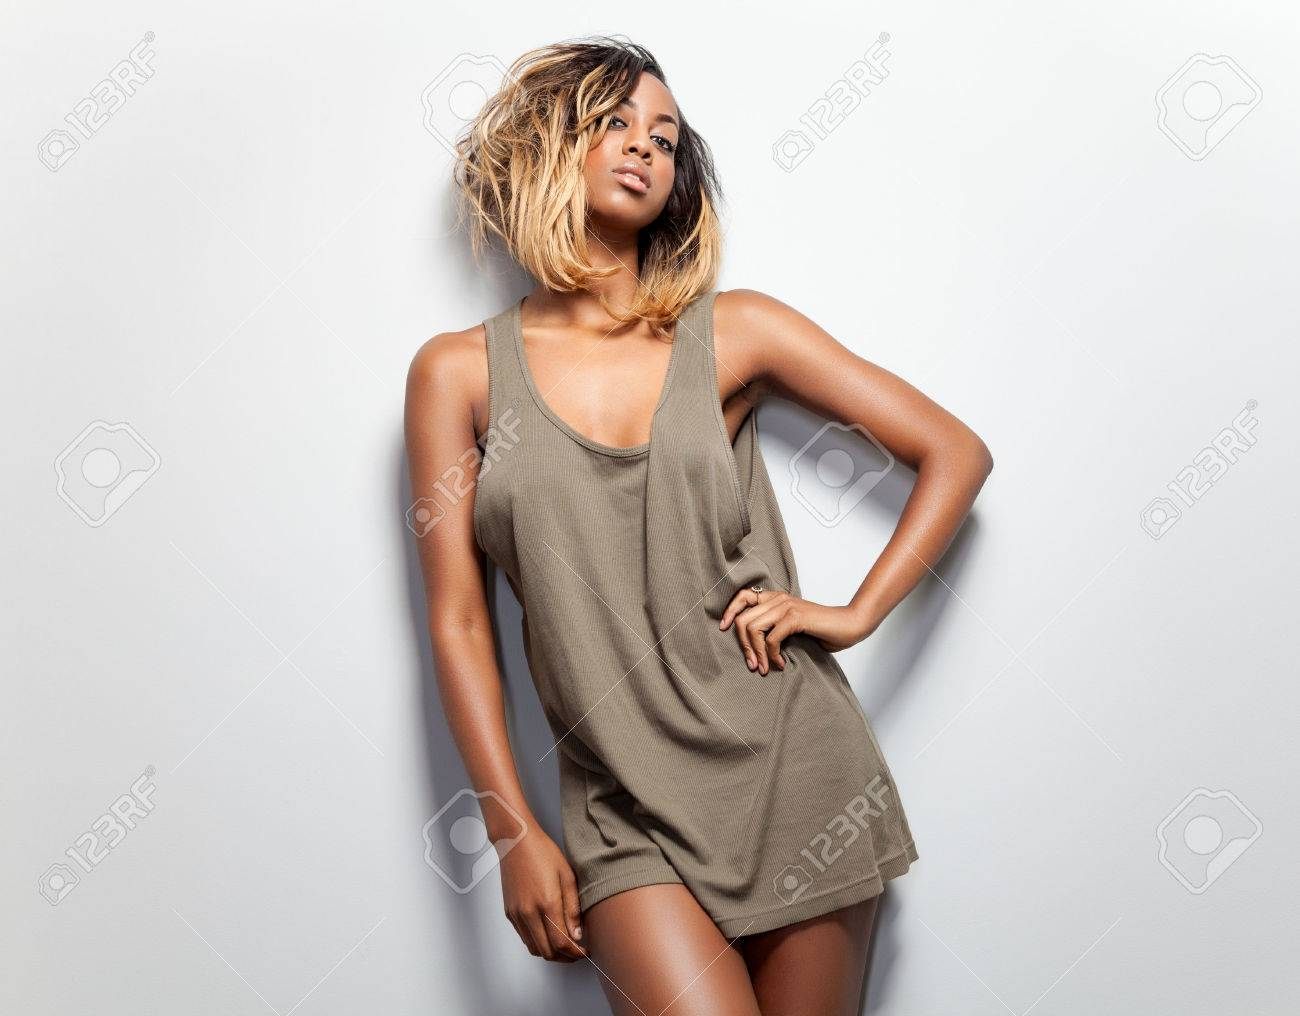 cc579359e7e53 Young beautiful woman wearing a tank top Stock Photo - 46009226